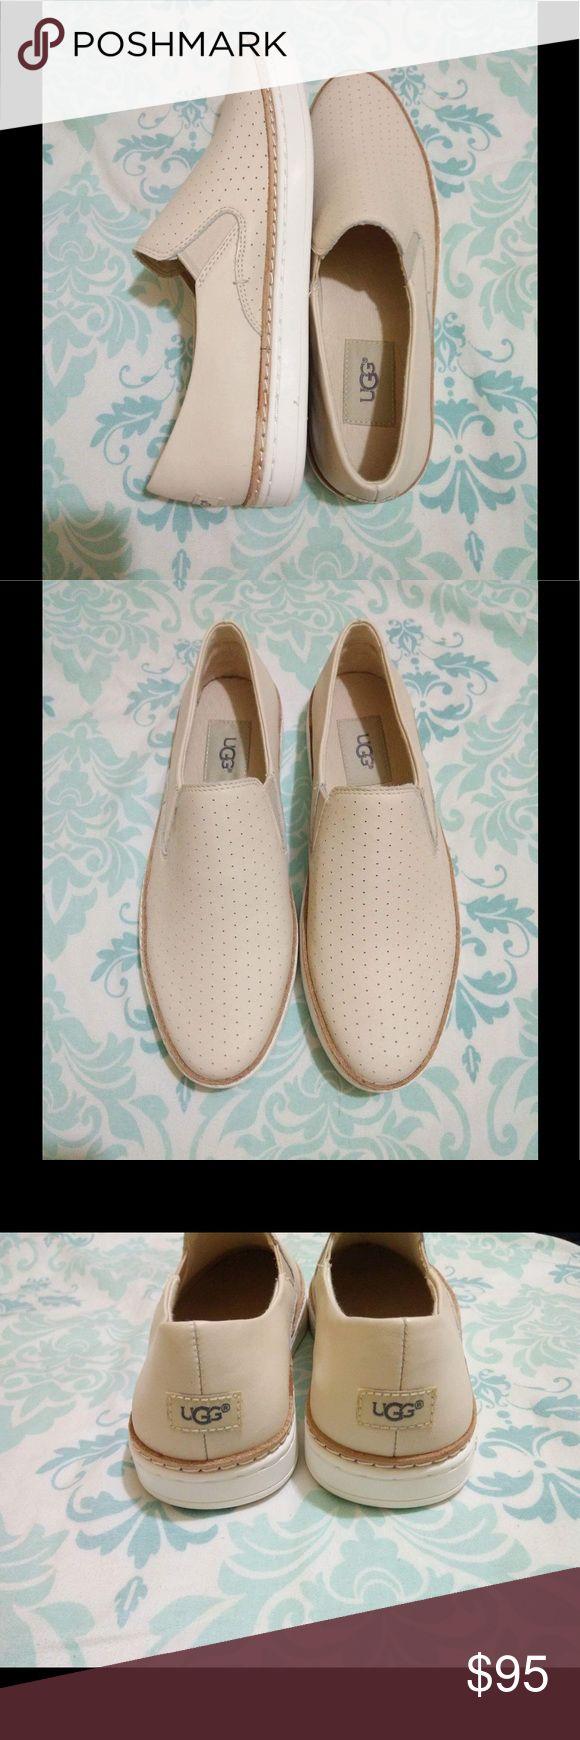 UGG Sneakers Very comfortable and fashion. It is brand new with box UGG Shoes Sneakers